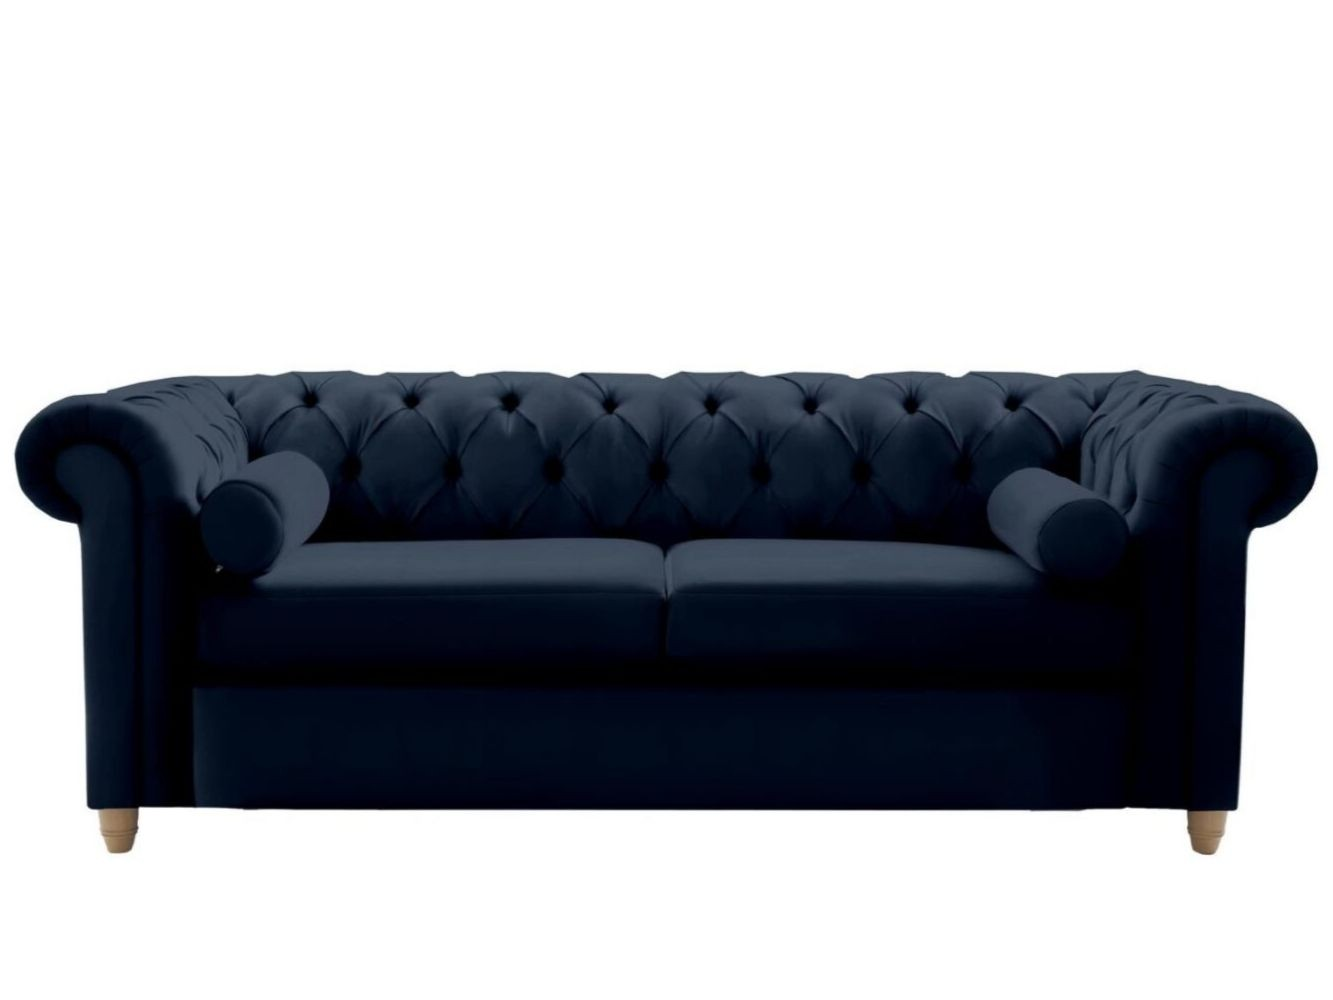 This is how I look in House Velvet Sapphire with reflex foam seat cushions